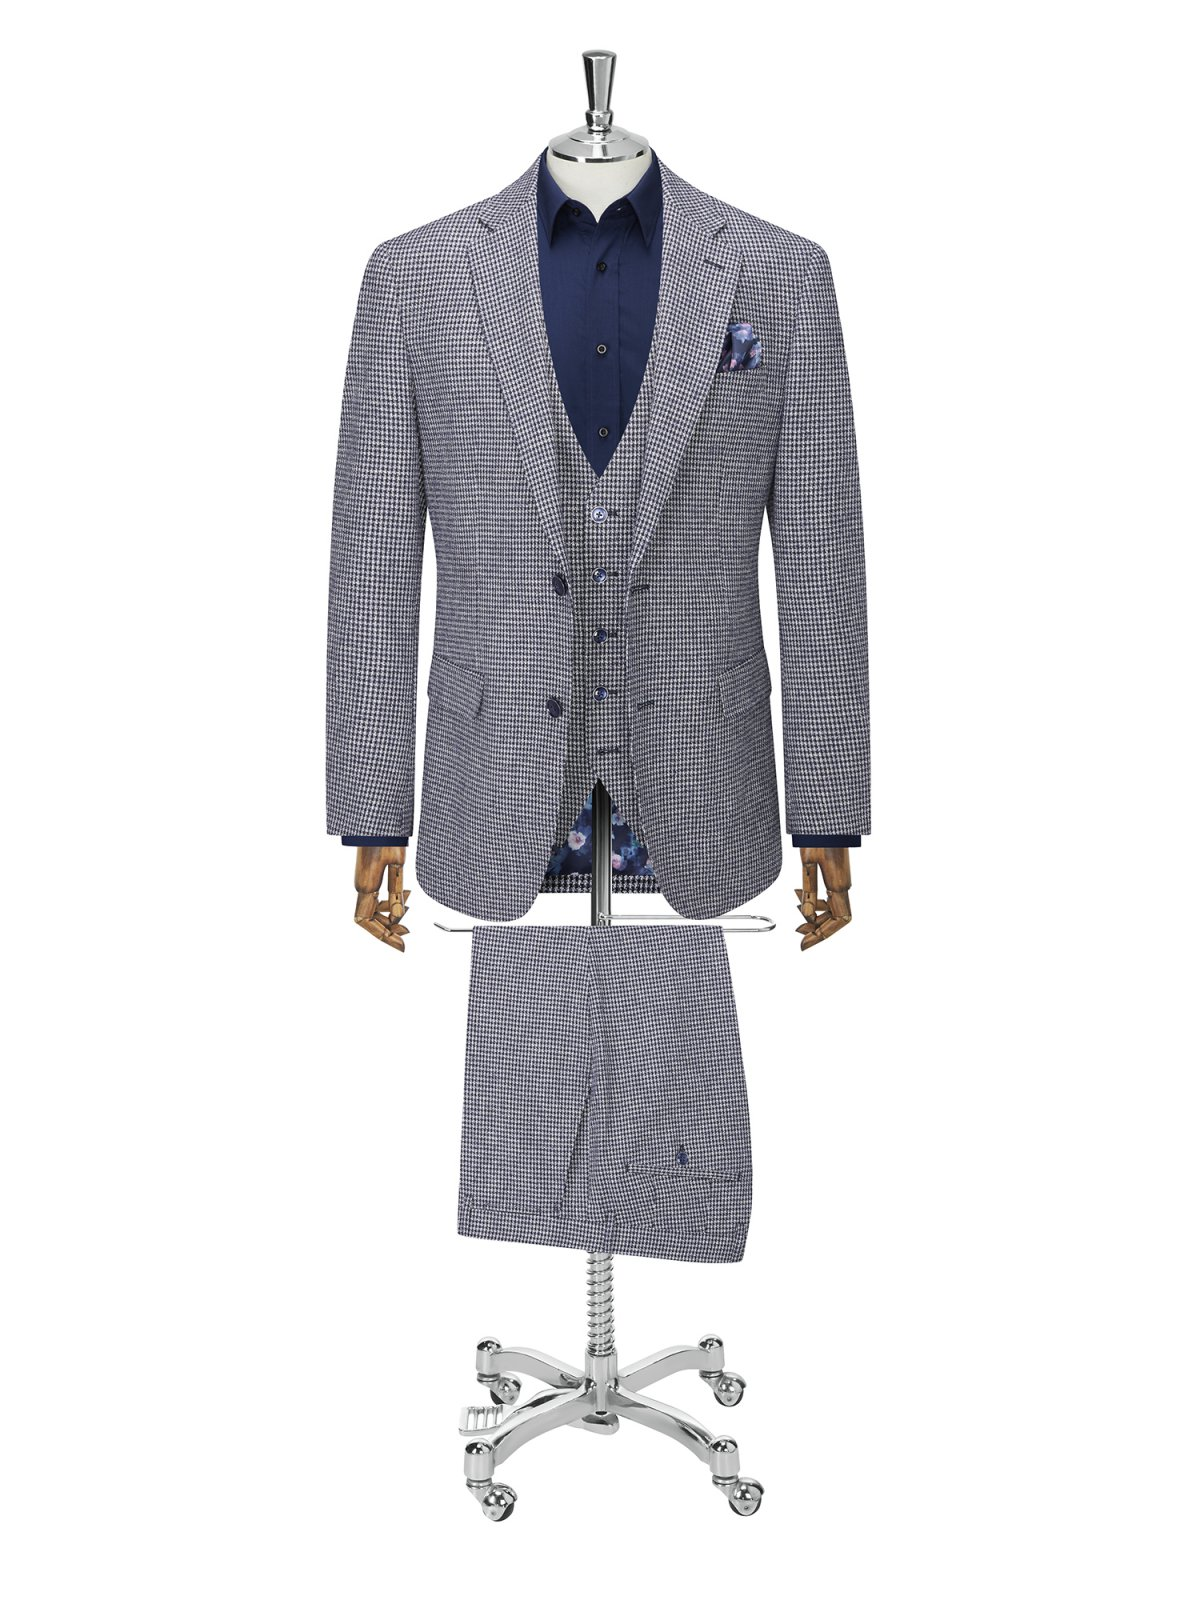 Keller Tailored fit Jacket